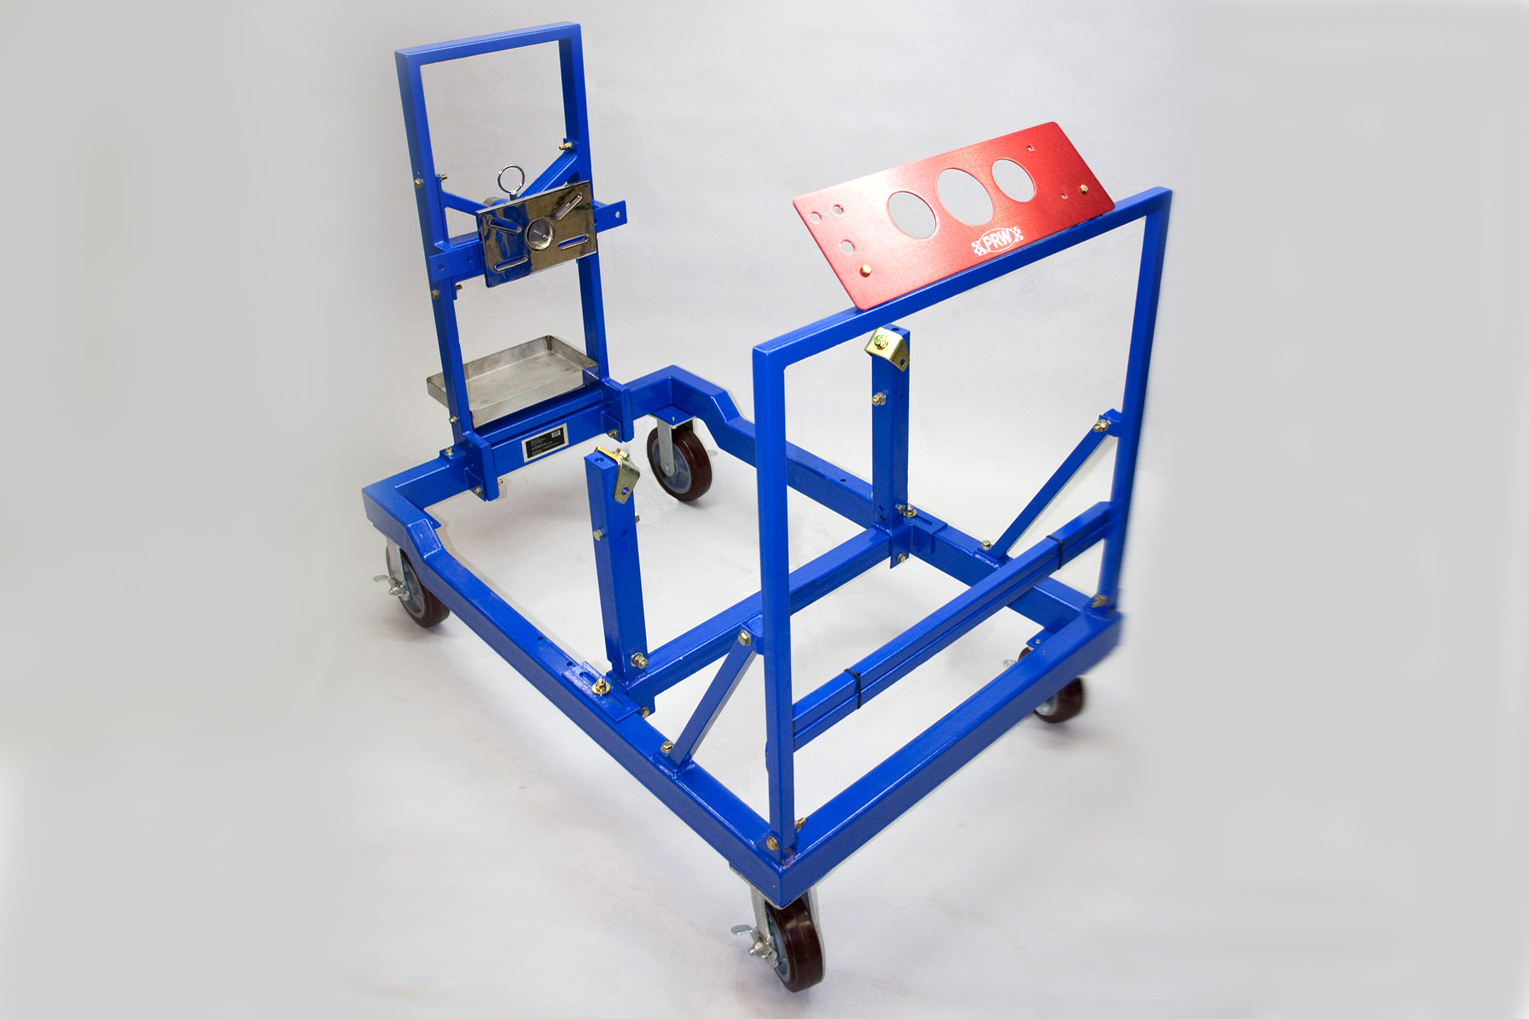 hight resolution of the prw engine test stand is available in a number of configurations ranging from bare bones to fully accessorized also available is the rotating